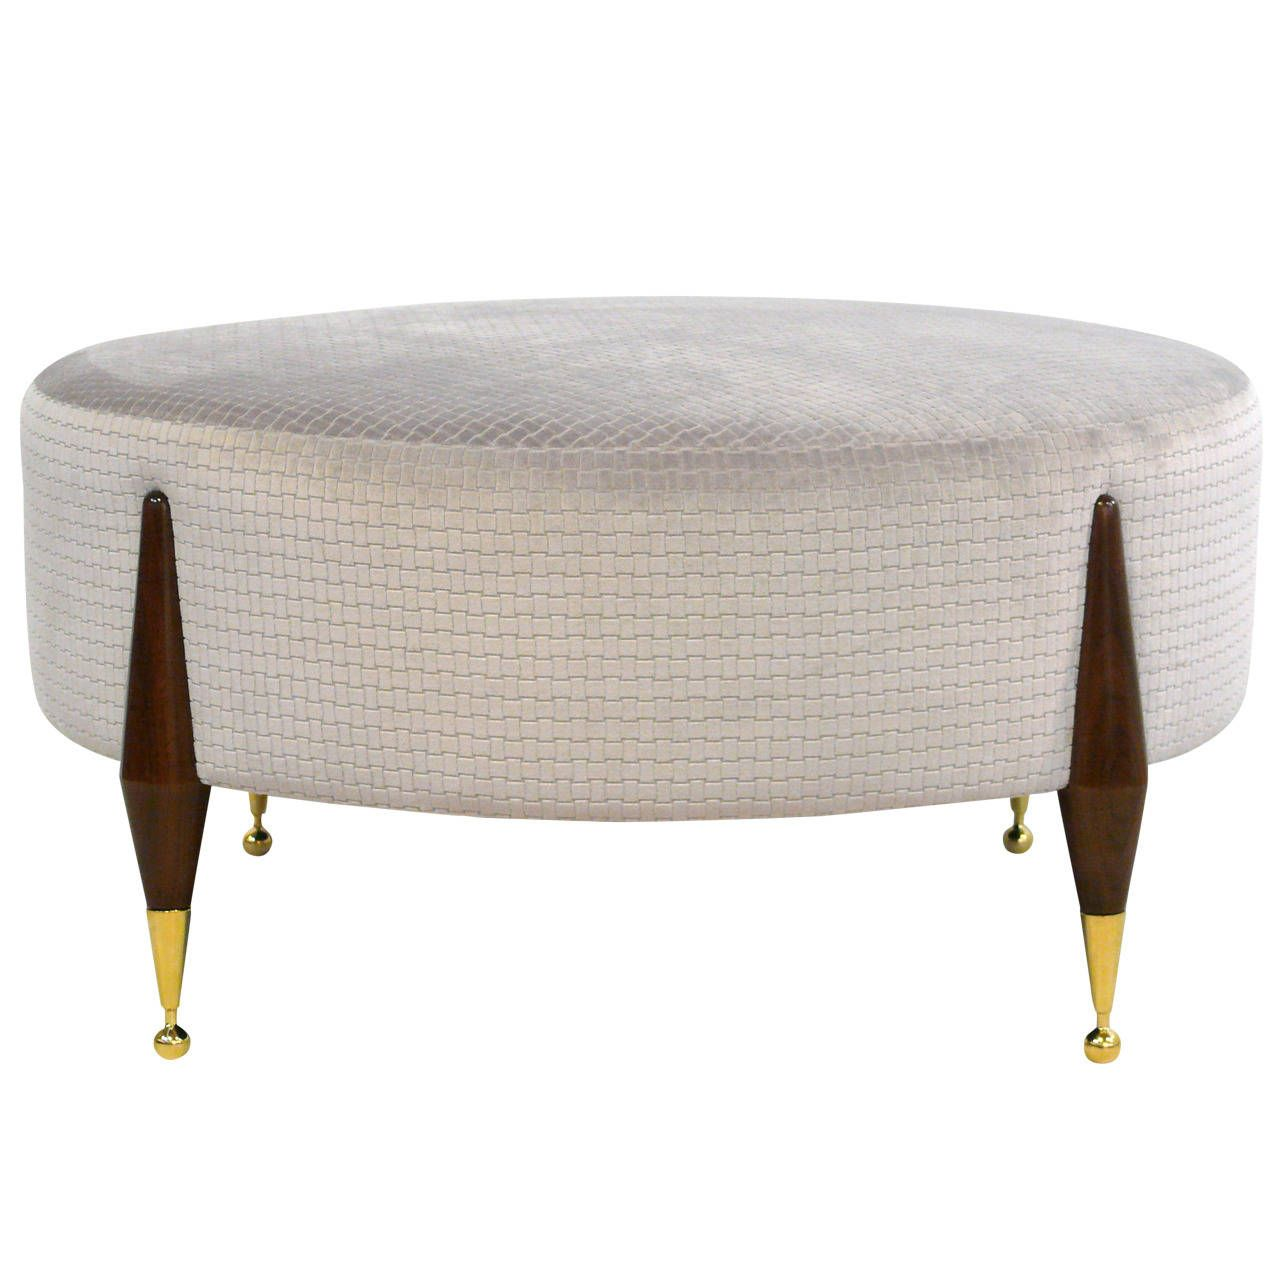 Imperial Ball-Foot Ottoman or Coffee Table | Mesas de centro ...